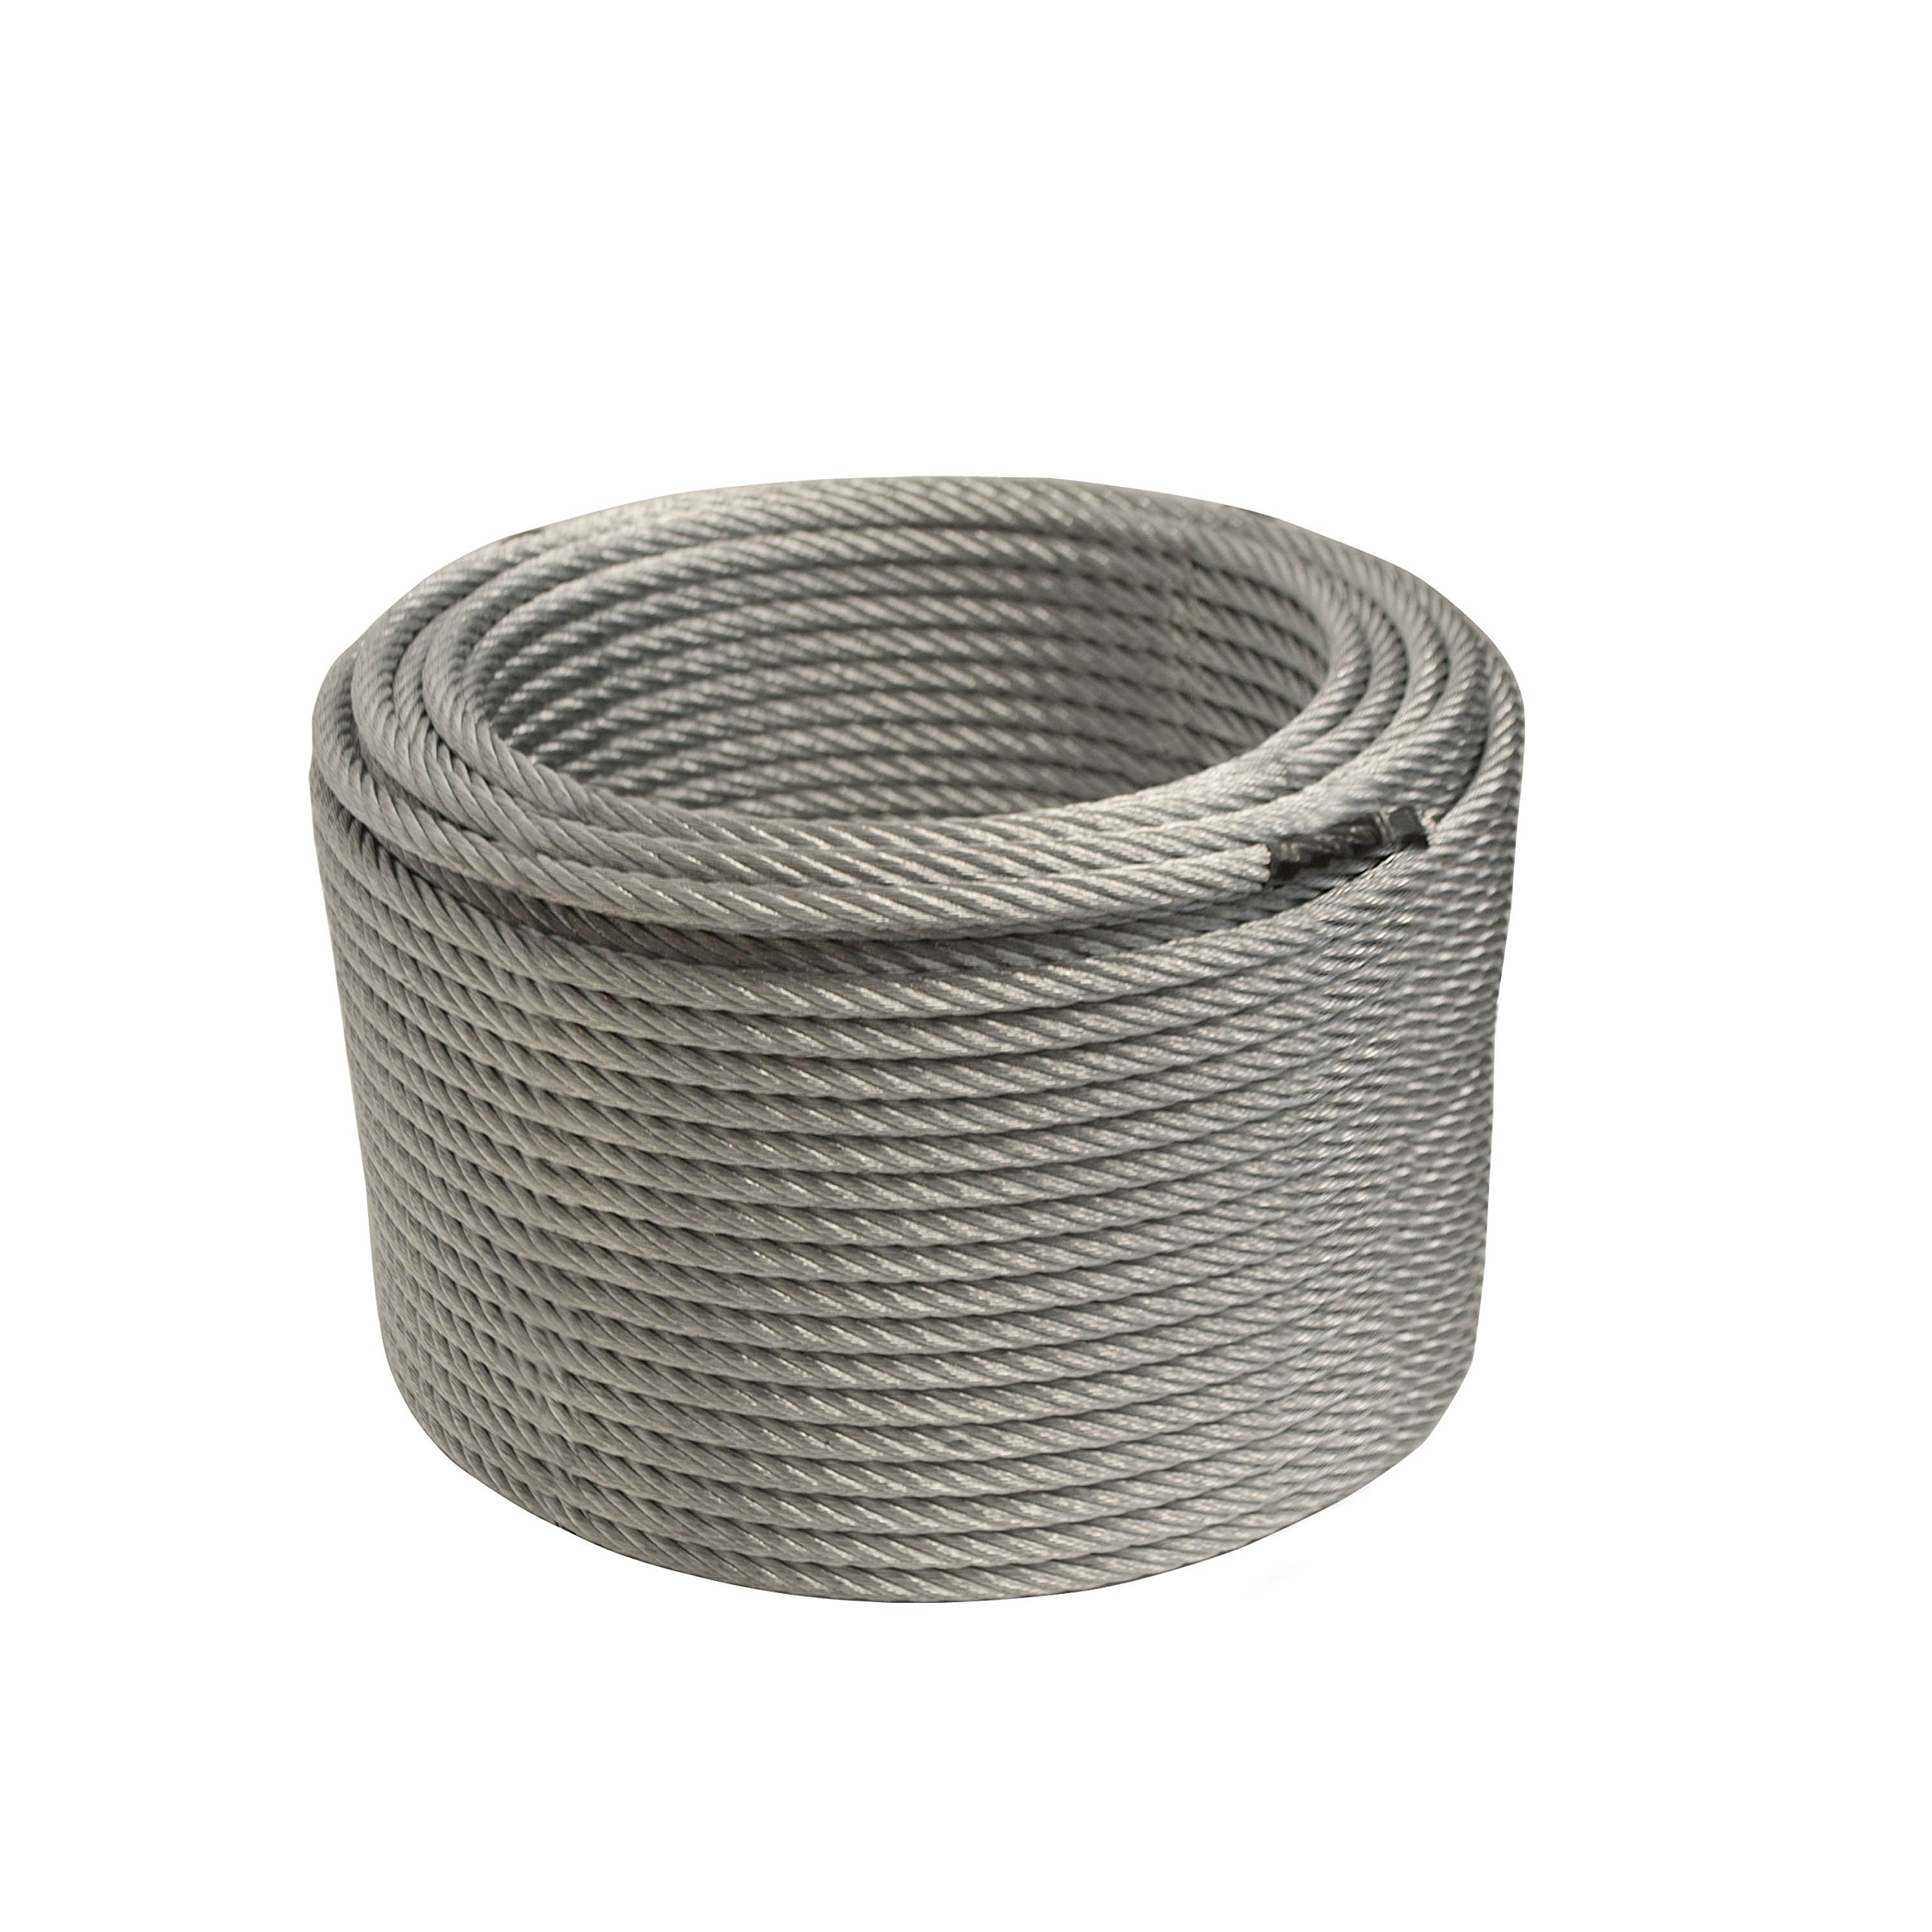 ALEKO WR3/8G7X19F250 3/8 Inch Diameter 7 x 19 Strand Galvanized Aircraft Steel Cable Wire Rope 250 Feet